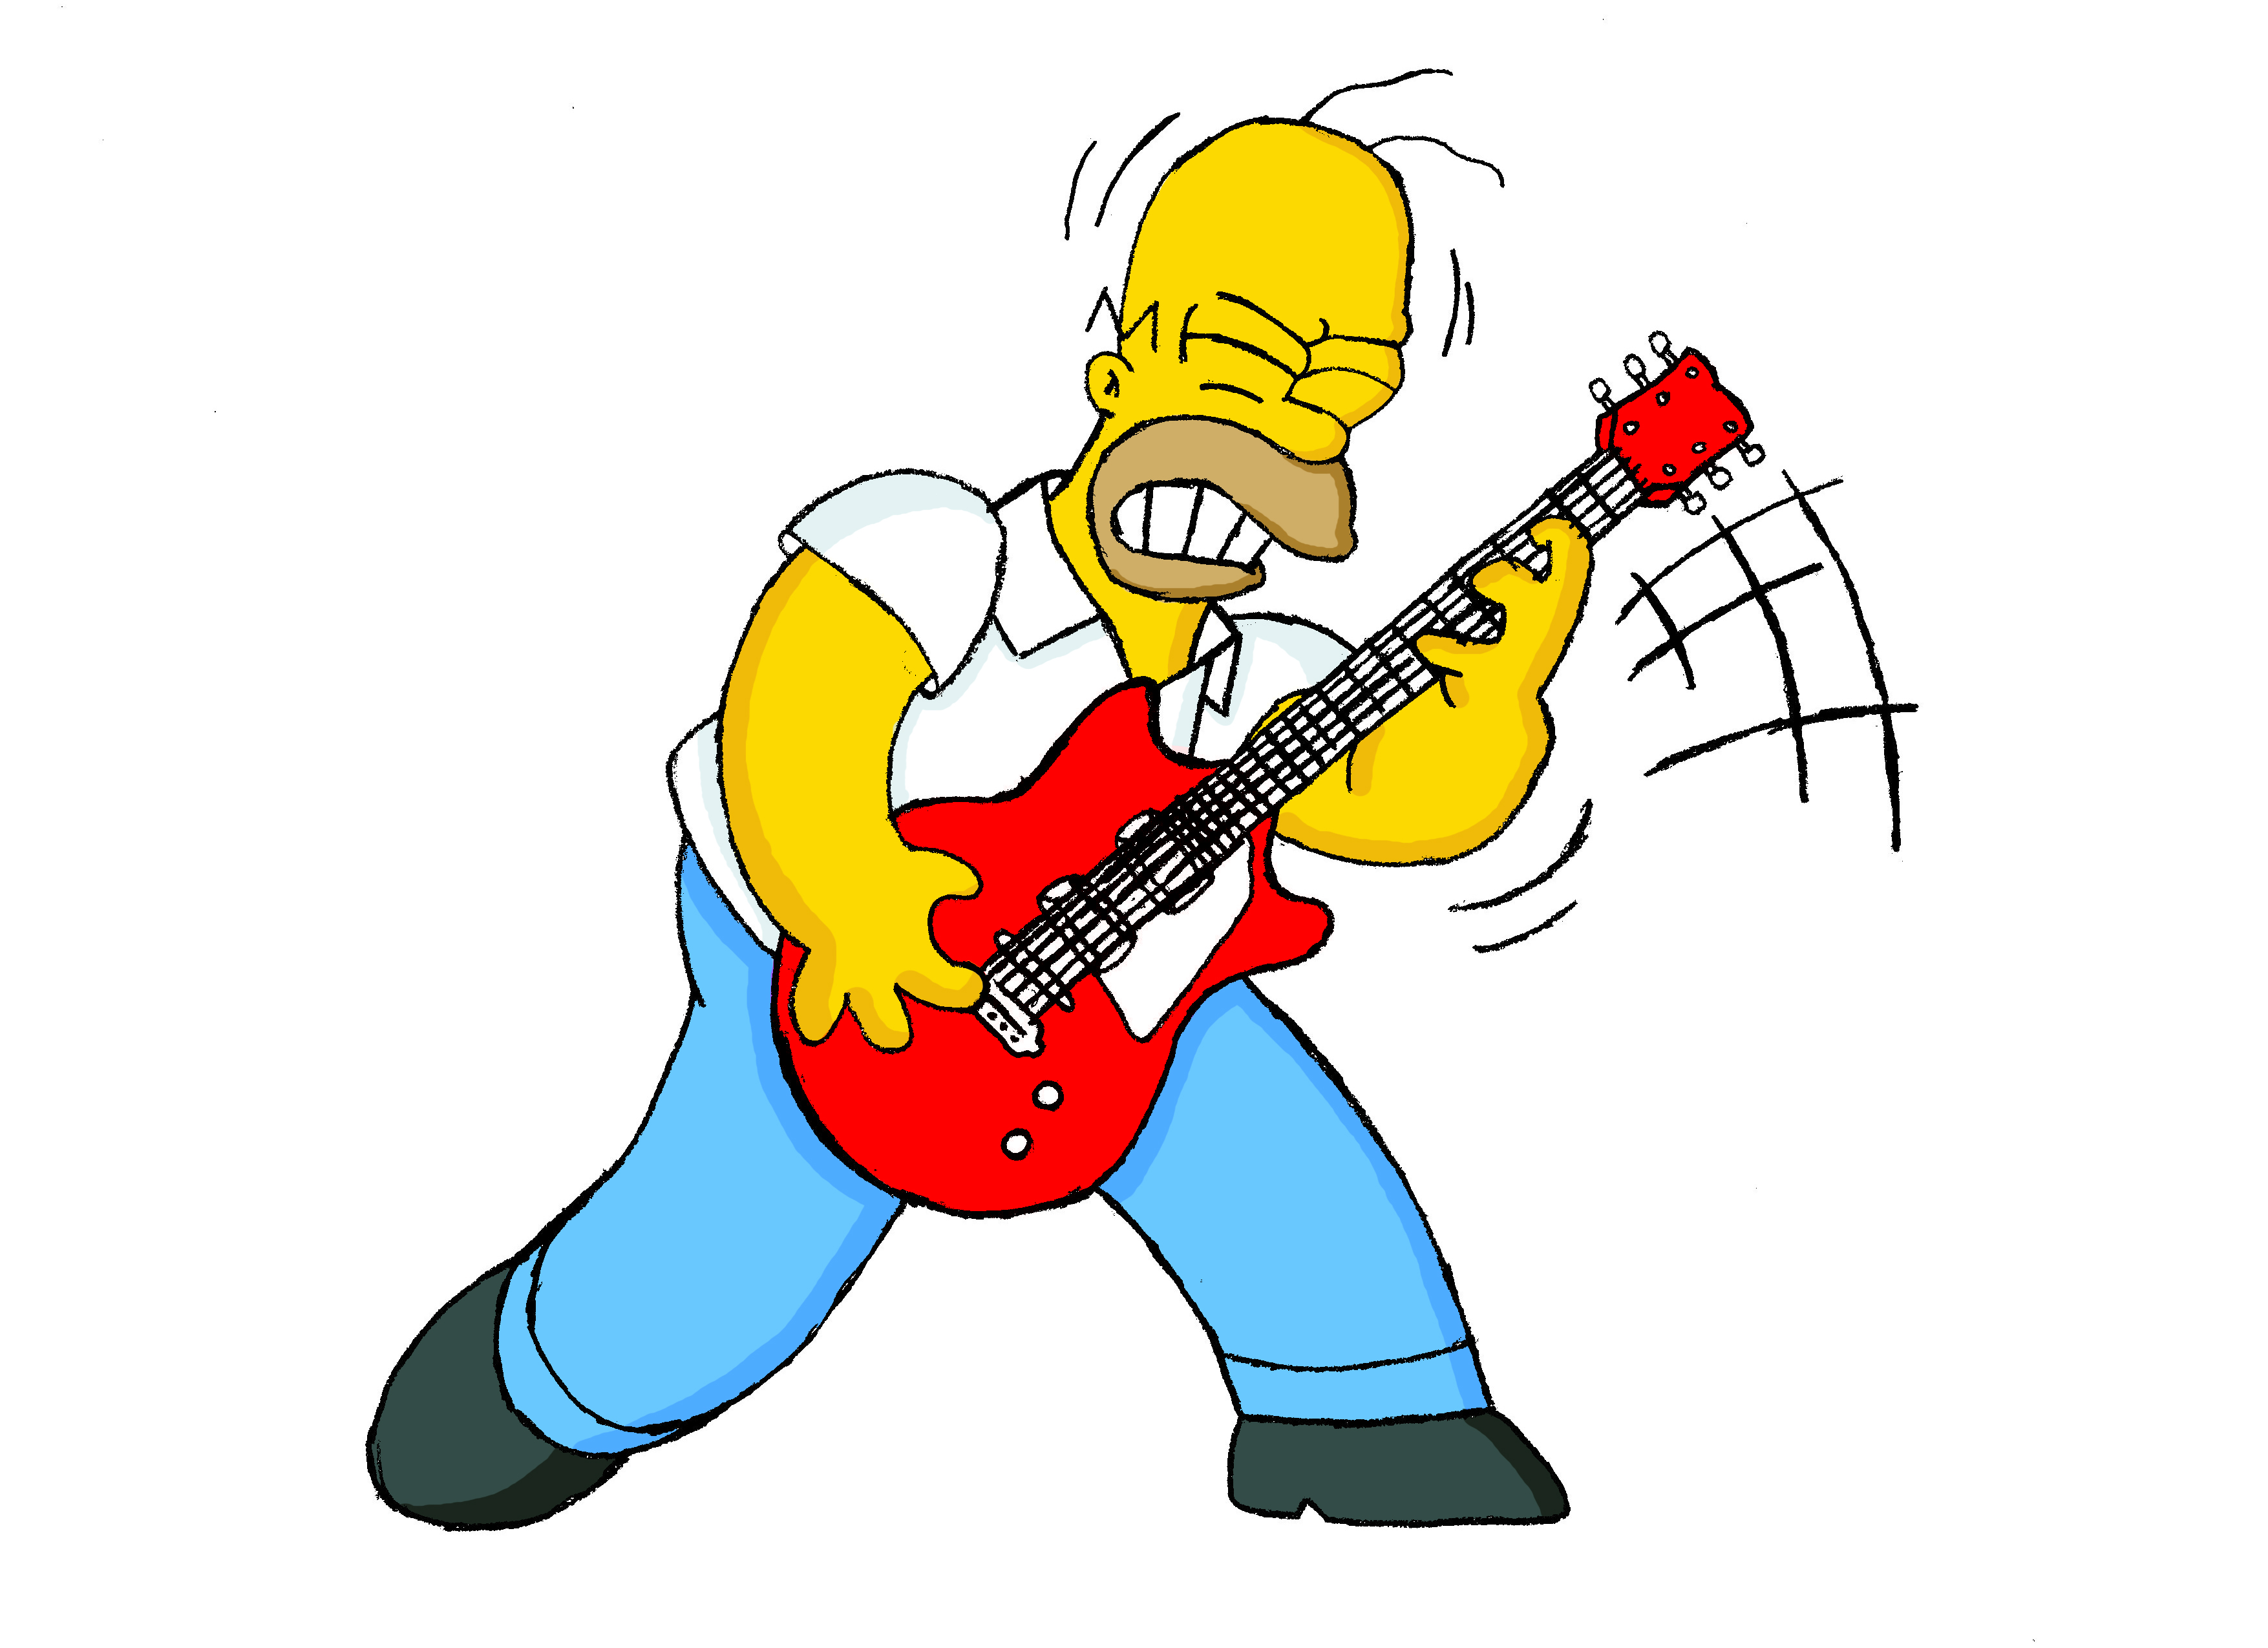 The simpsons hd wallpaper background image 3509x2550 id 457073 wallpaper abyss - Guitare simpson ...